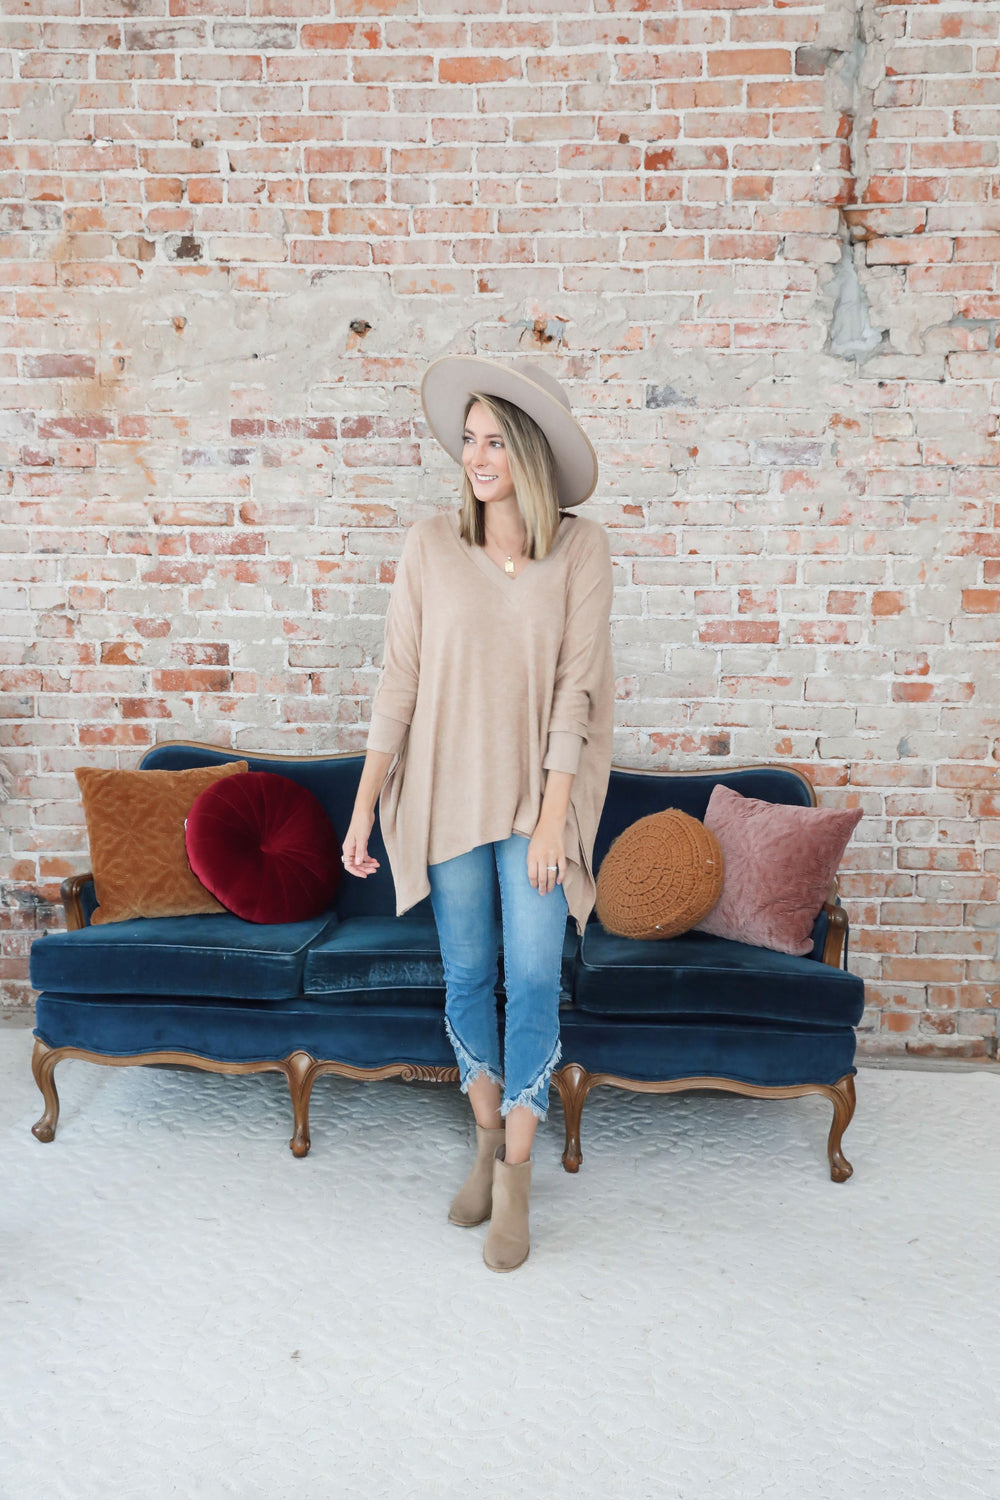 RESTOCK Tan Bright Future Flowy Knit Camel Poncho Inspired by Taylor Brown